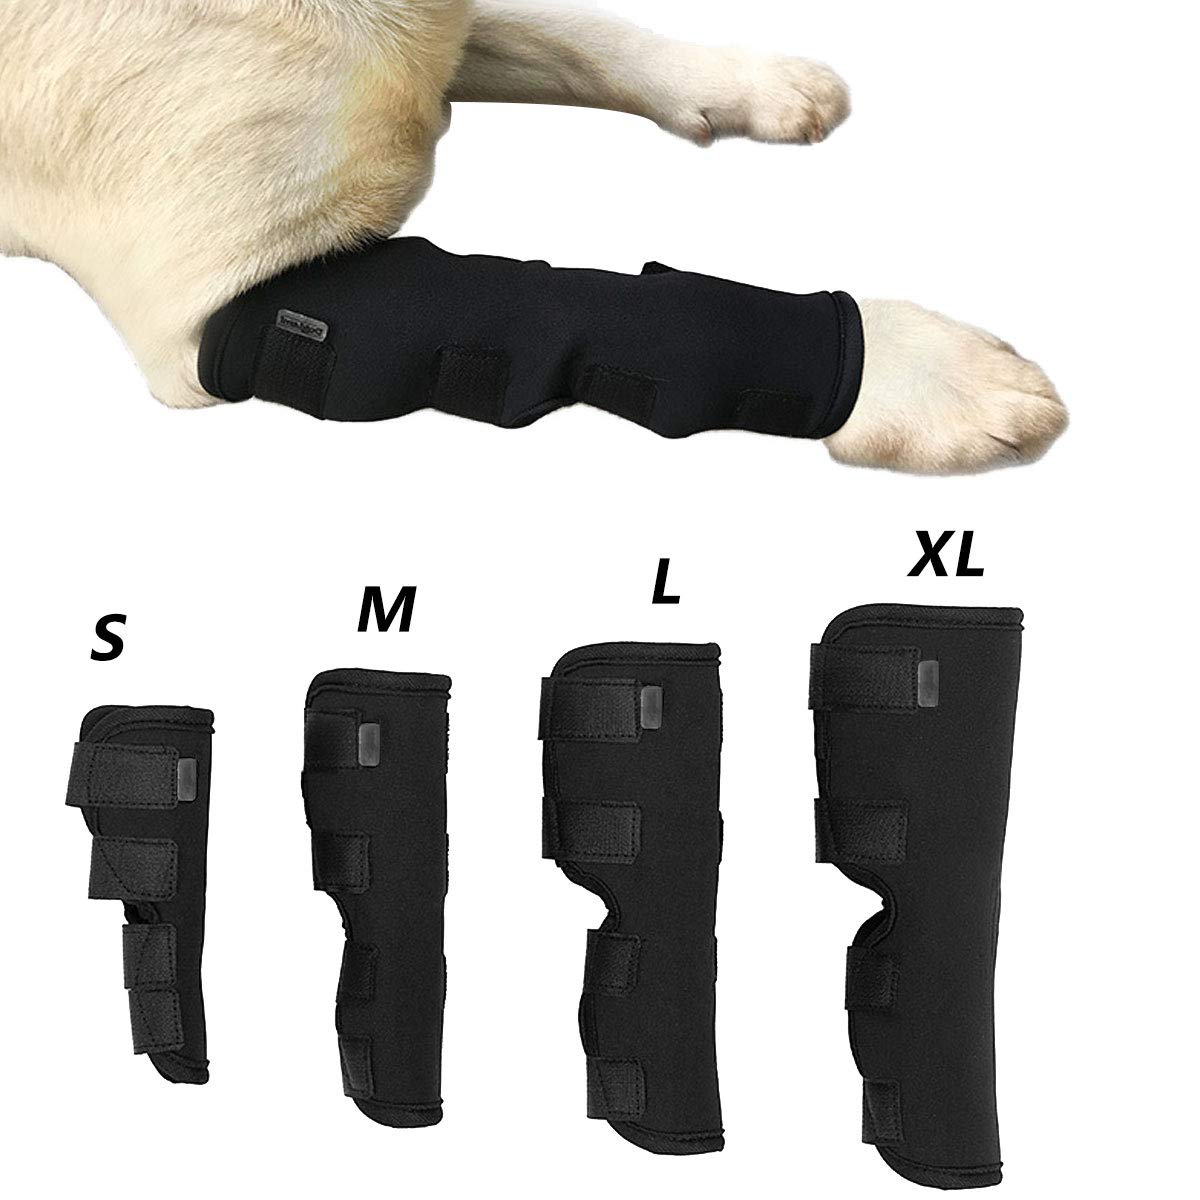 CHICTRY Dog Canine Rear Leg Hock Joint Brace Compression Wrap Extra Support Protects Wounds Heal Prevents Injuries and Sprains Helps with Stability Loss Caused by Arthritis Black M